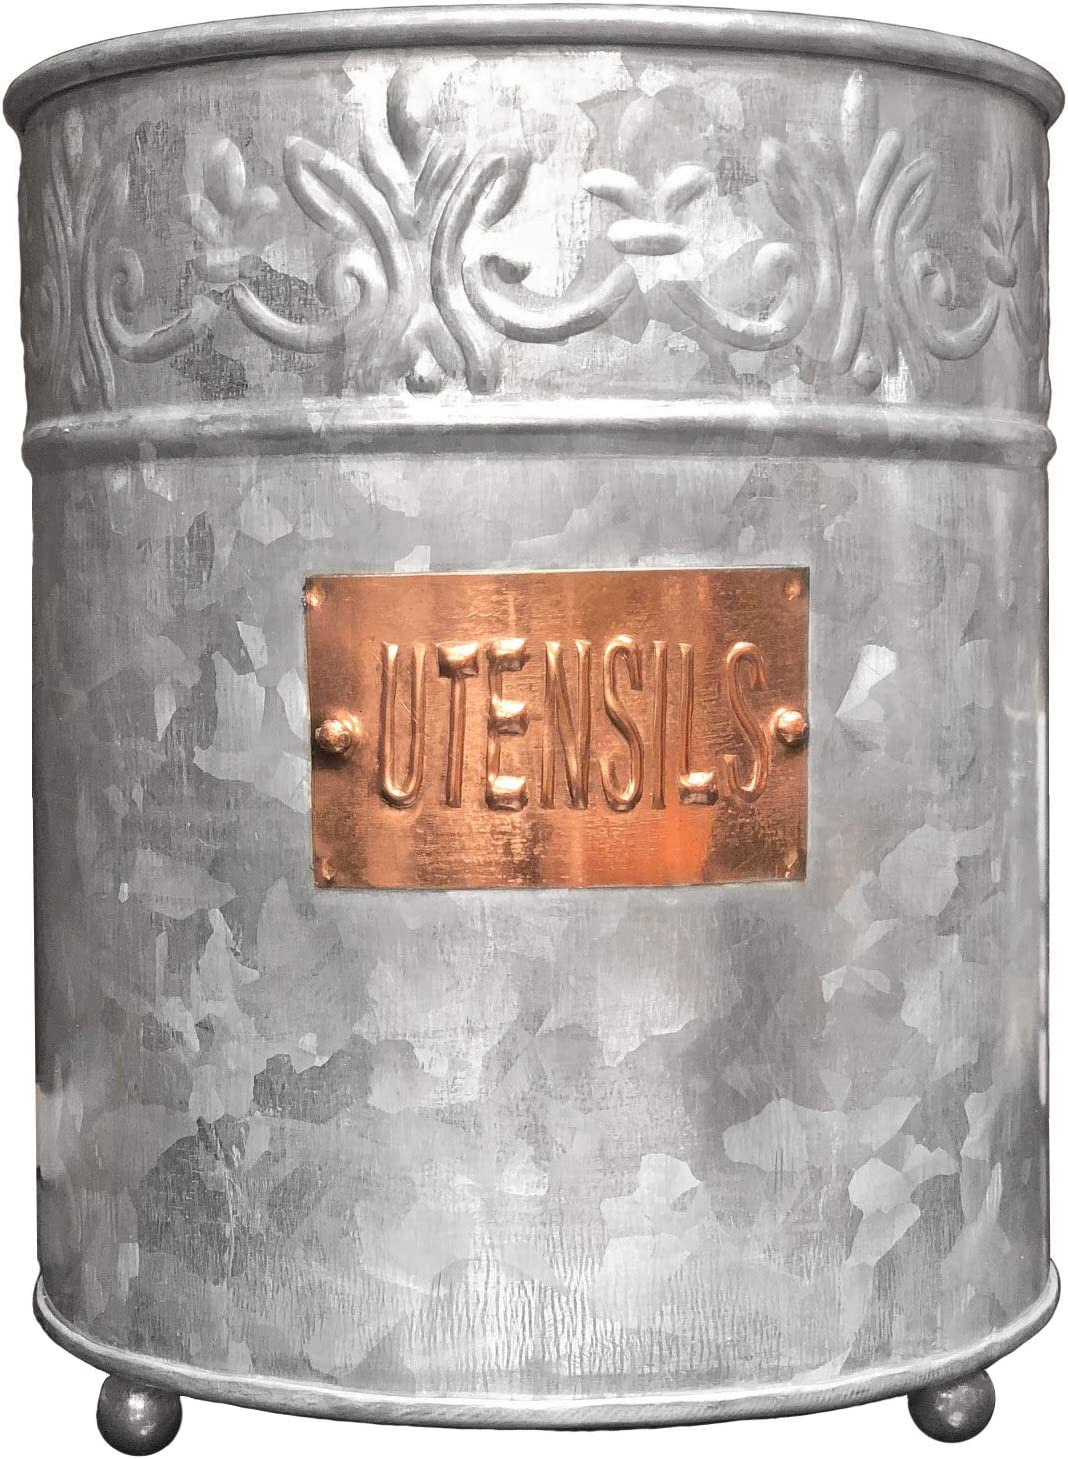 Autumn Alley Galvanized Large Kitchen Utensil Holder | Handmade | Pretty Embossing and Copper Label add Farmhouse Warmth and Charm |